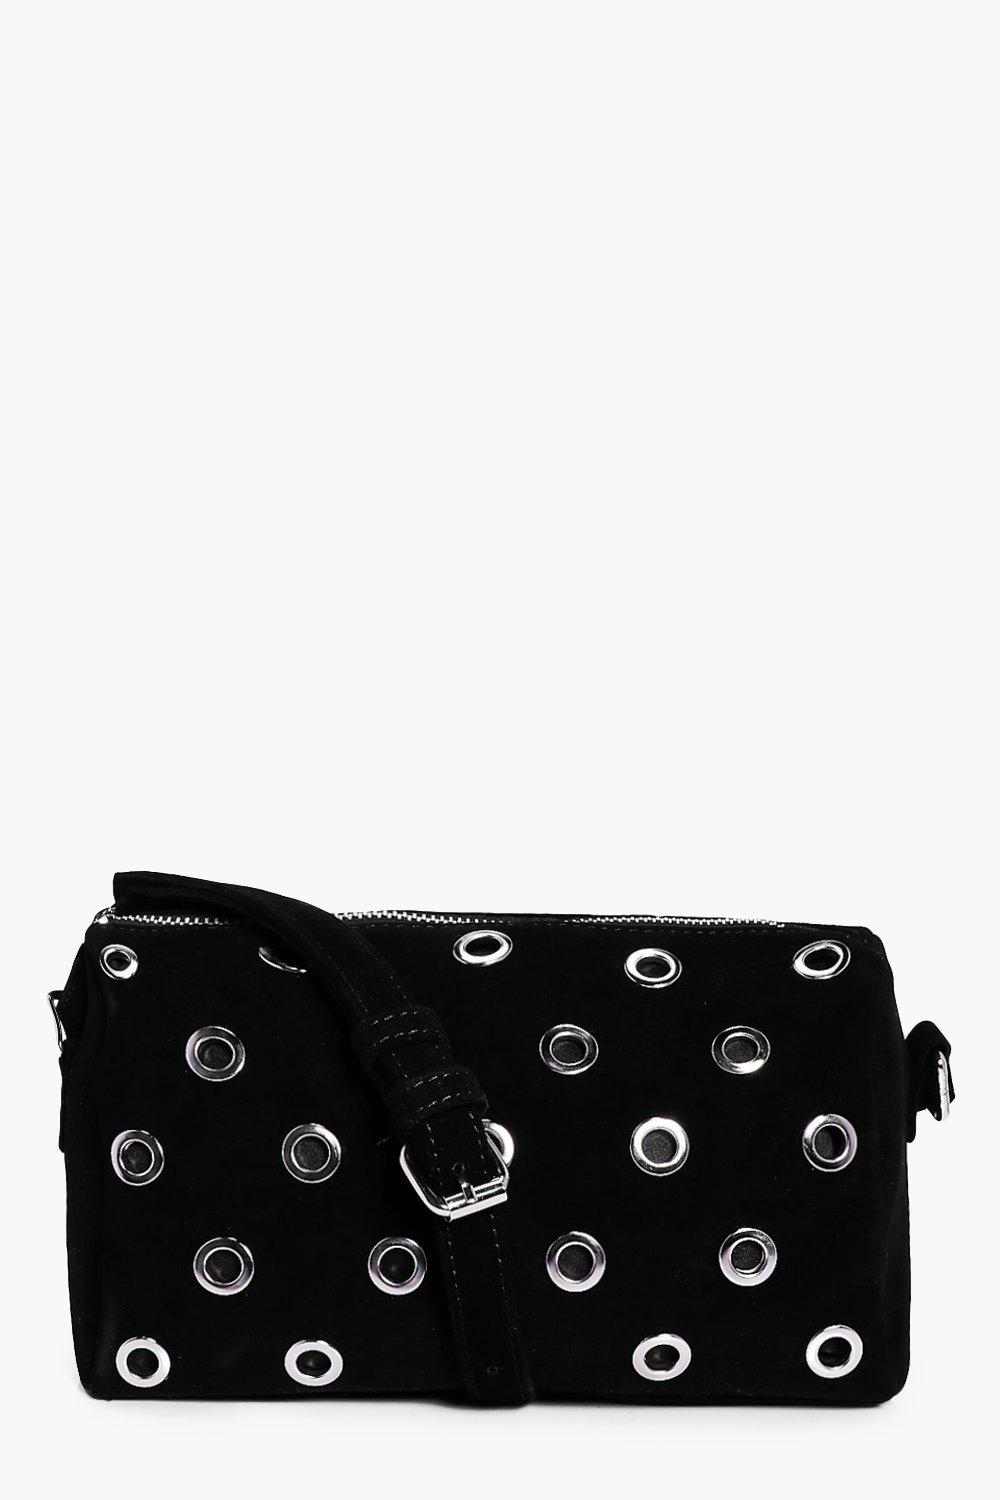 Eyelet Suedette Cross Body Bag - black - Louise Ey